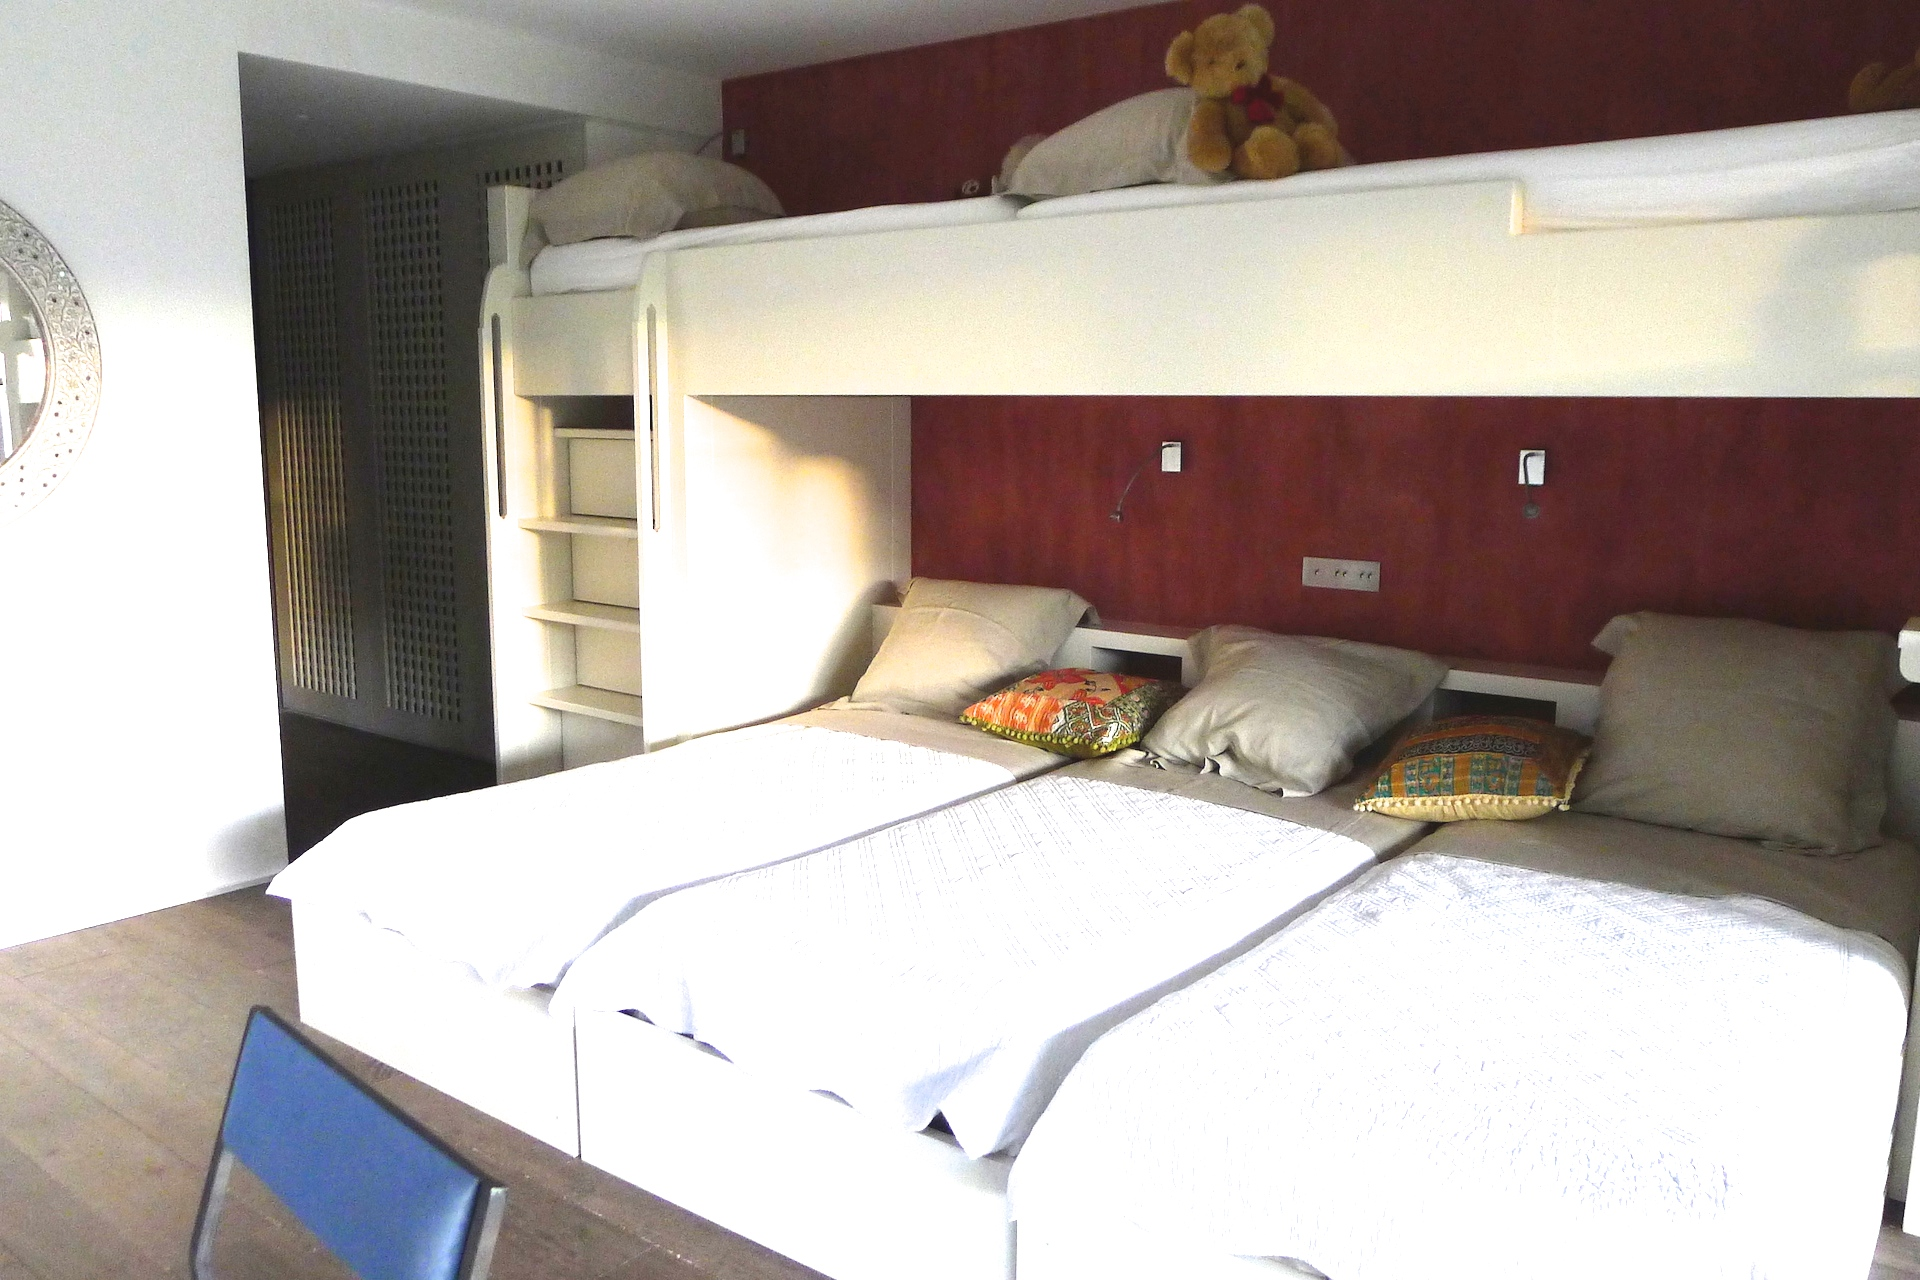 The sixth bedroom in the Villa Grimaud vacation rental offered by Paris Perfect